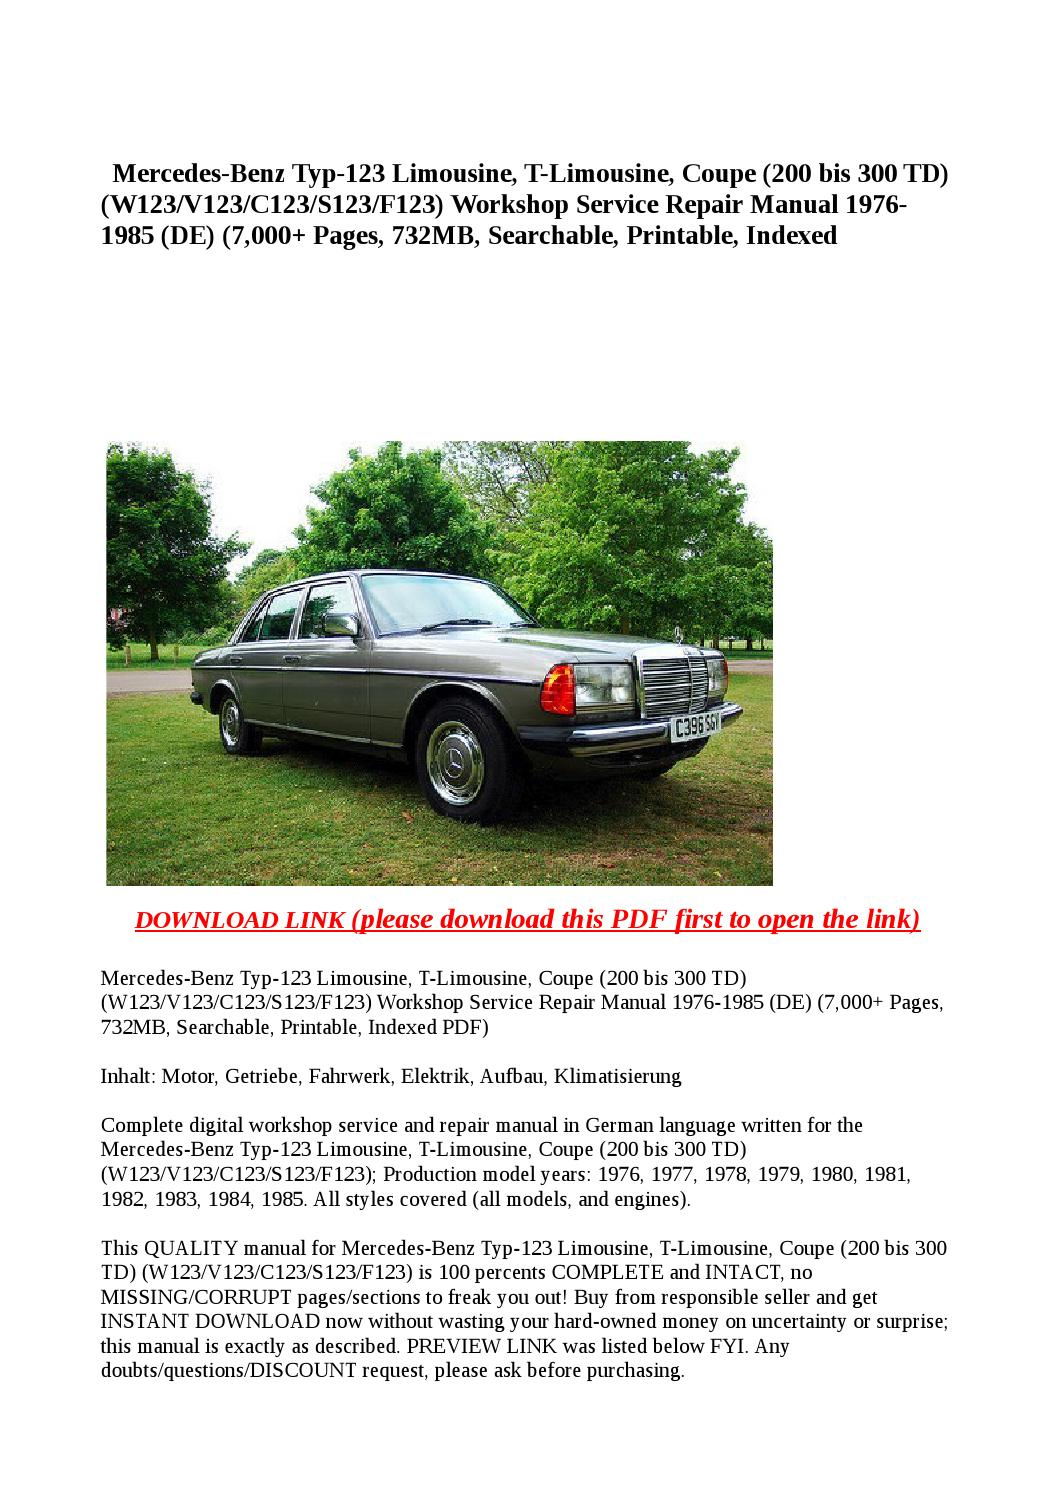 Mercedes benz typ 123 limousine, t limousine, coupe (200 bis 300 td) (w123  v123 c123 s123 f123) work by steve - issuu